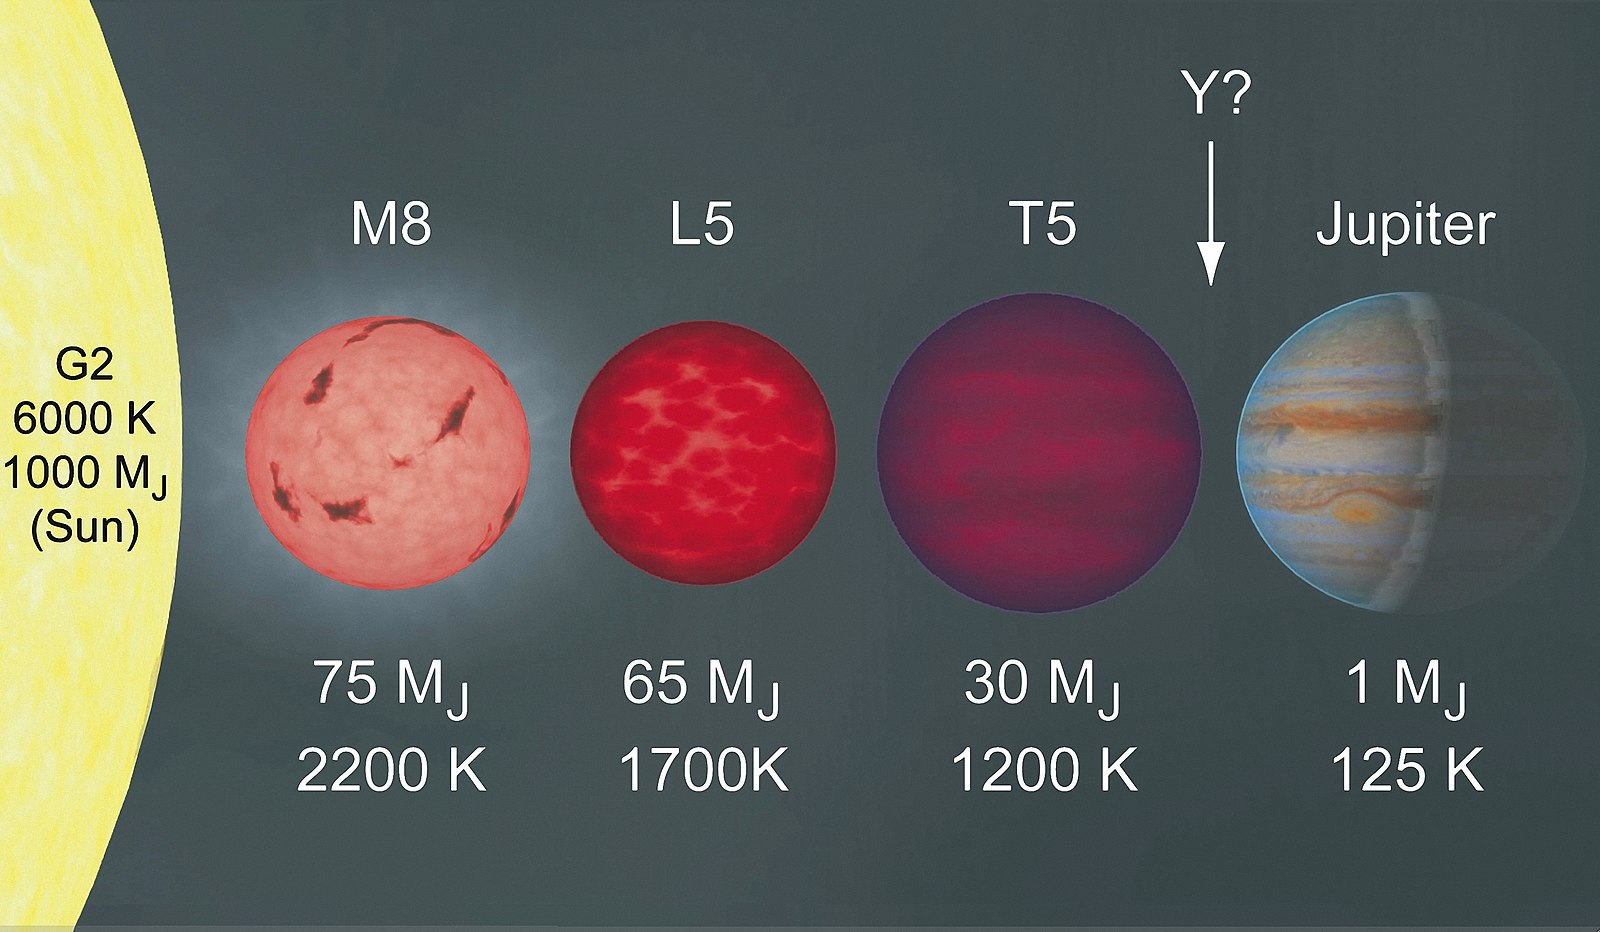 "An image on five astronomical bodies in a row. From left to right: 1. A large yellow star with the caption ""G2, 6000 Kelvin, 1000 MJ, (Sun)."" 2. A light red star with the caption ""M8,  75 MJ, 2200 Kelvin."" 3. A red brown dwarf with the caption ""L5, 65 MJ, 1700 Kelvin."" 4. A purple brown dwarf with the caption ""T5, 30 MJ, 1200 K."" 5. A bluish-orange planet with the caption ""Jupiter, 1 MJ, 125 Kelvin."" There is an arrow pointing to the space between the purple brown dwarf and Jupiter with the caption ""Y?""."